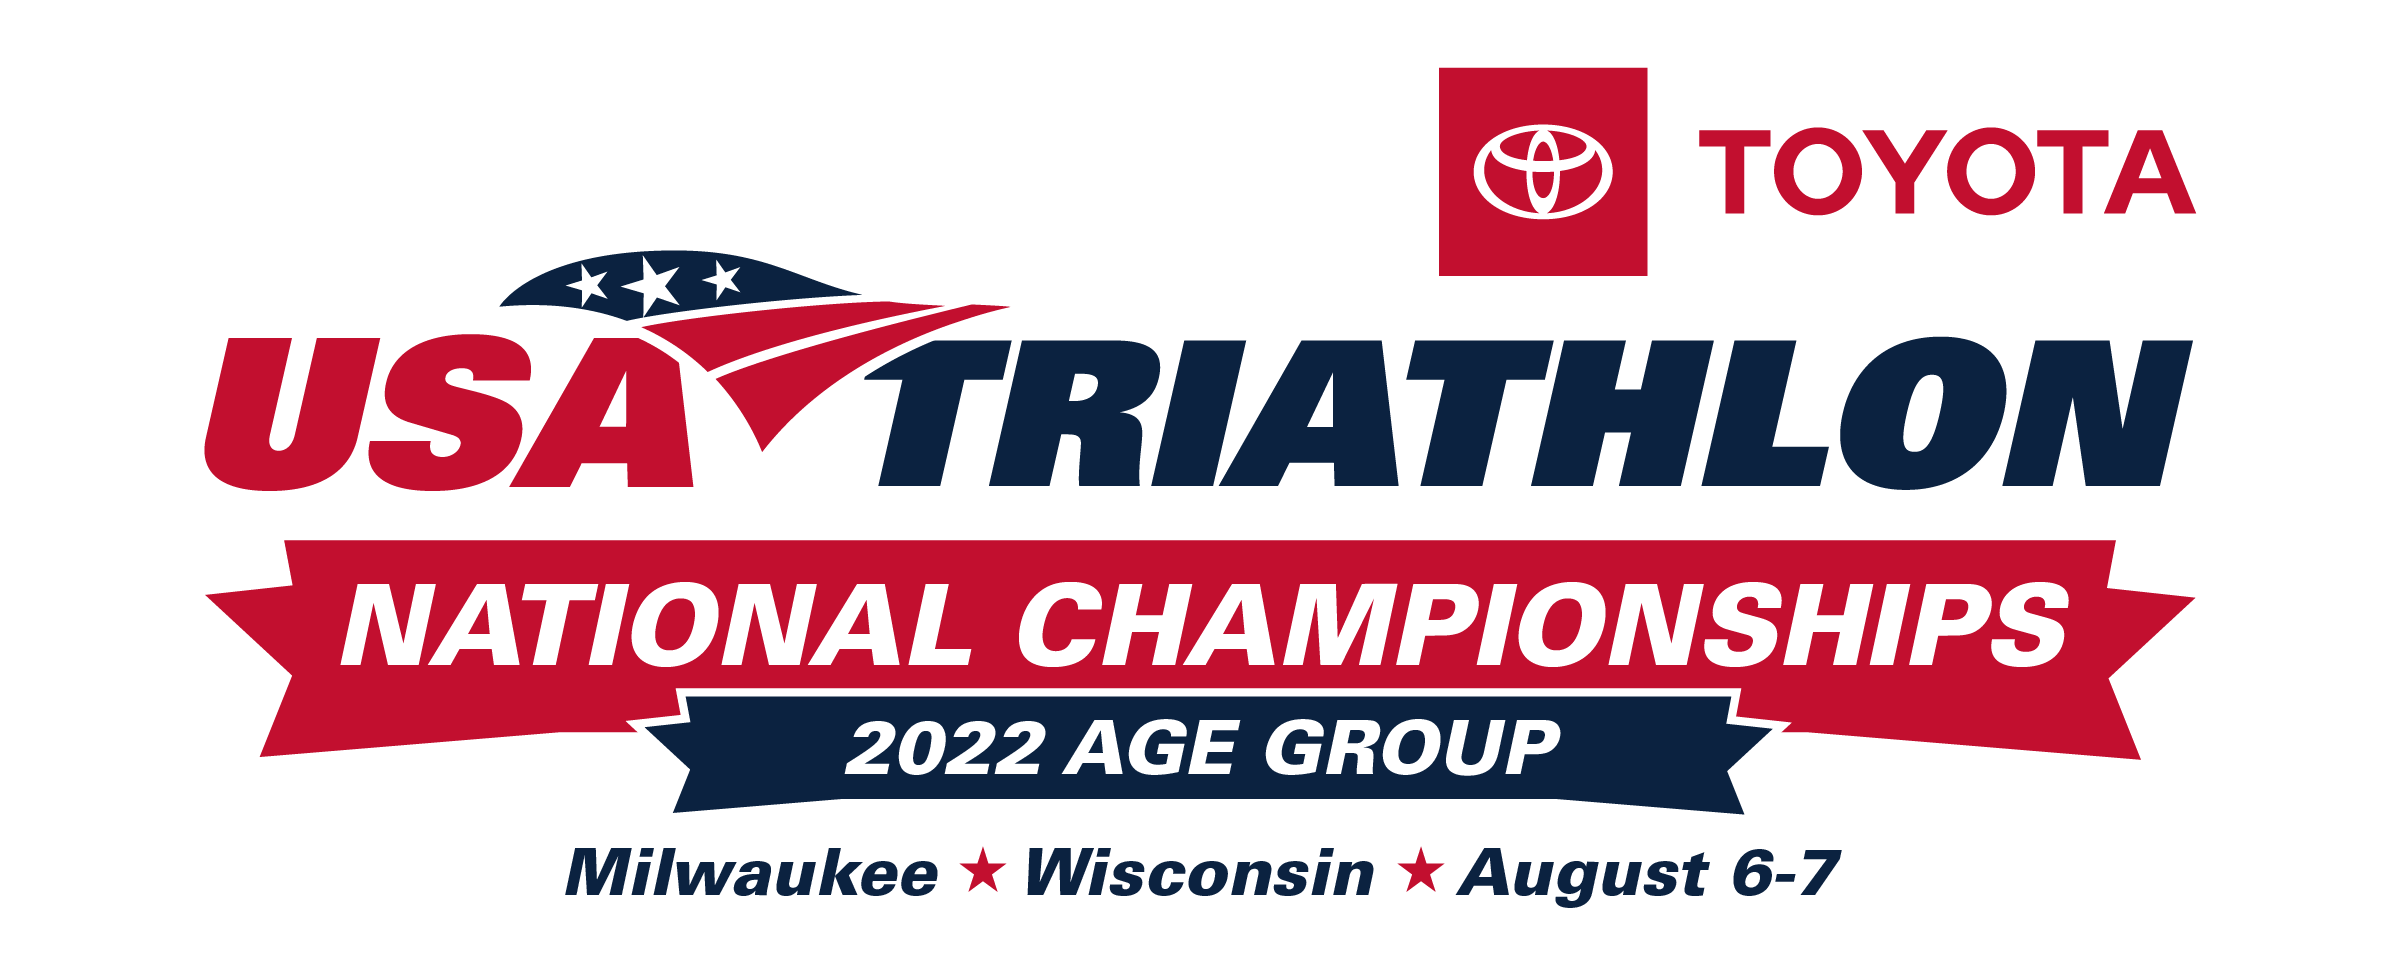 2022 Toyota Age Group National Championships